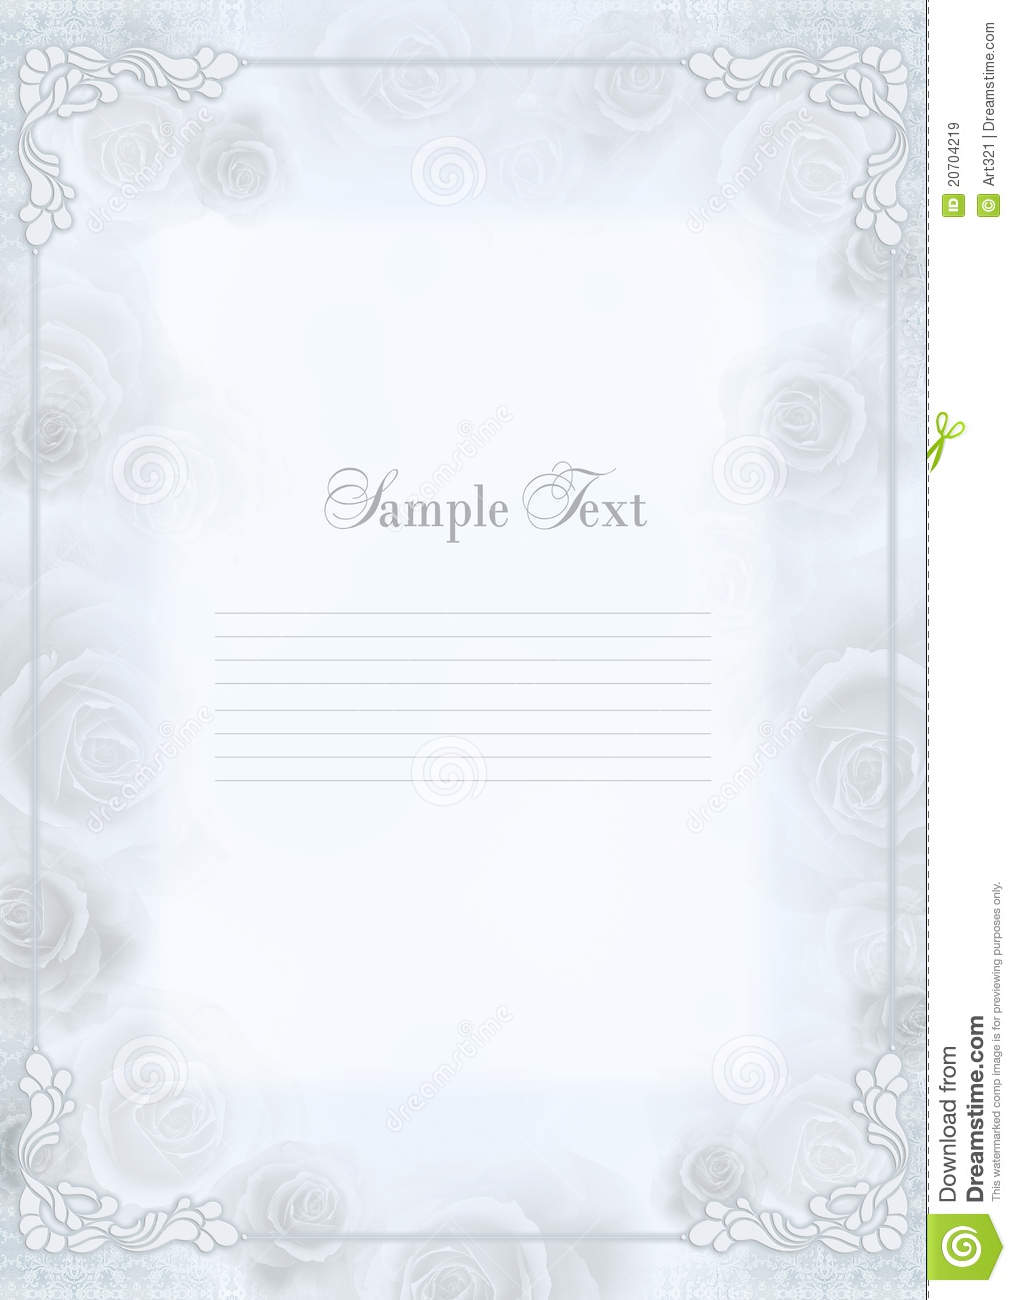 Wedding Invitation Frame is an amazing ideas you had to choose for invitation design